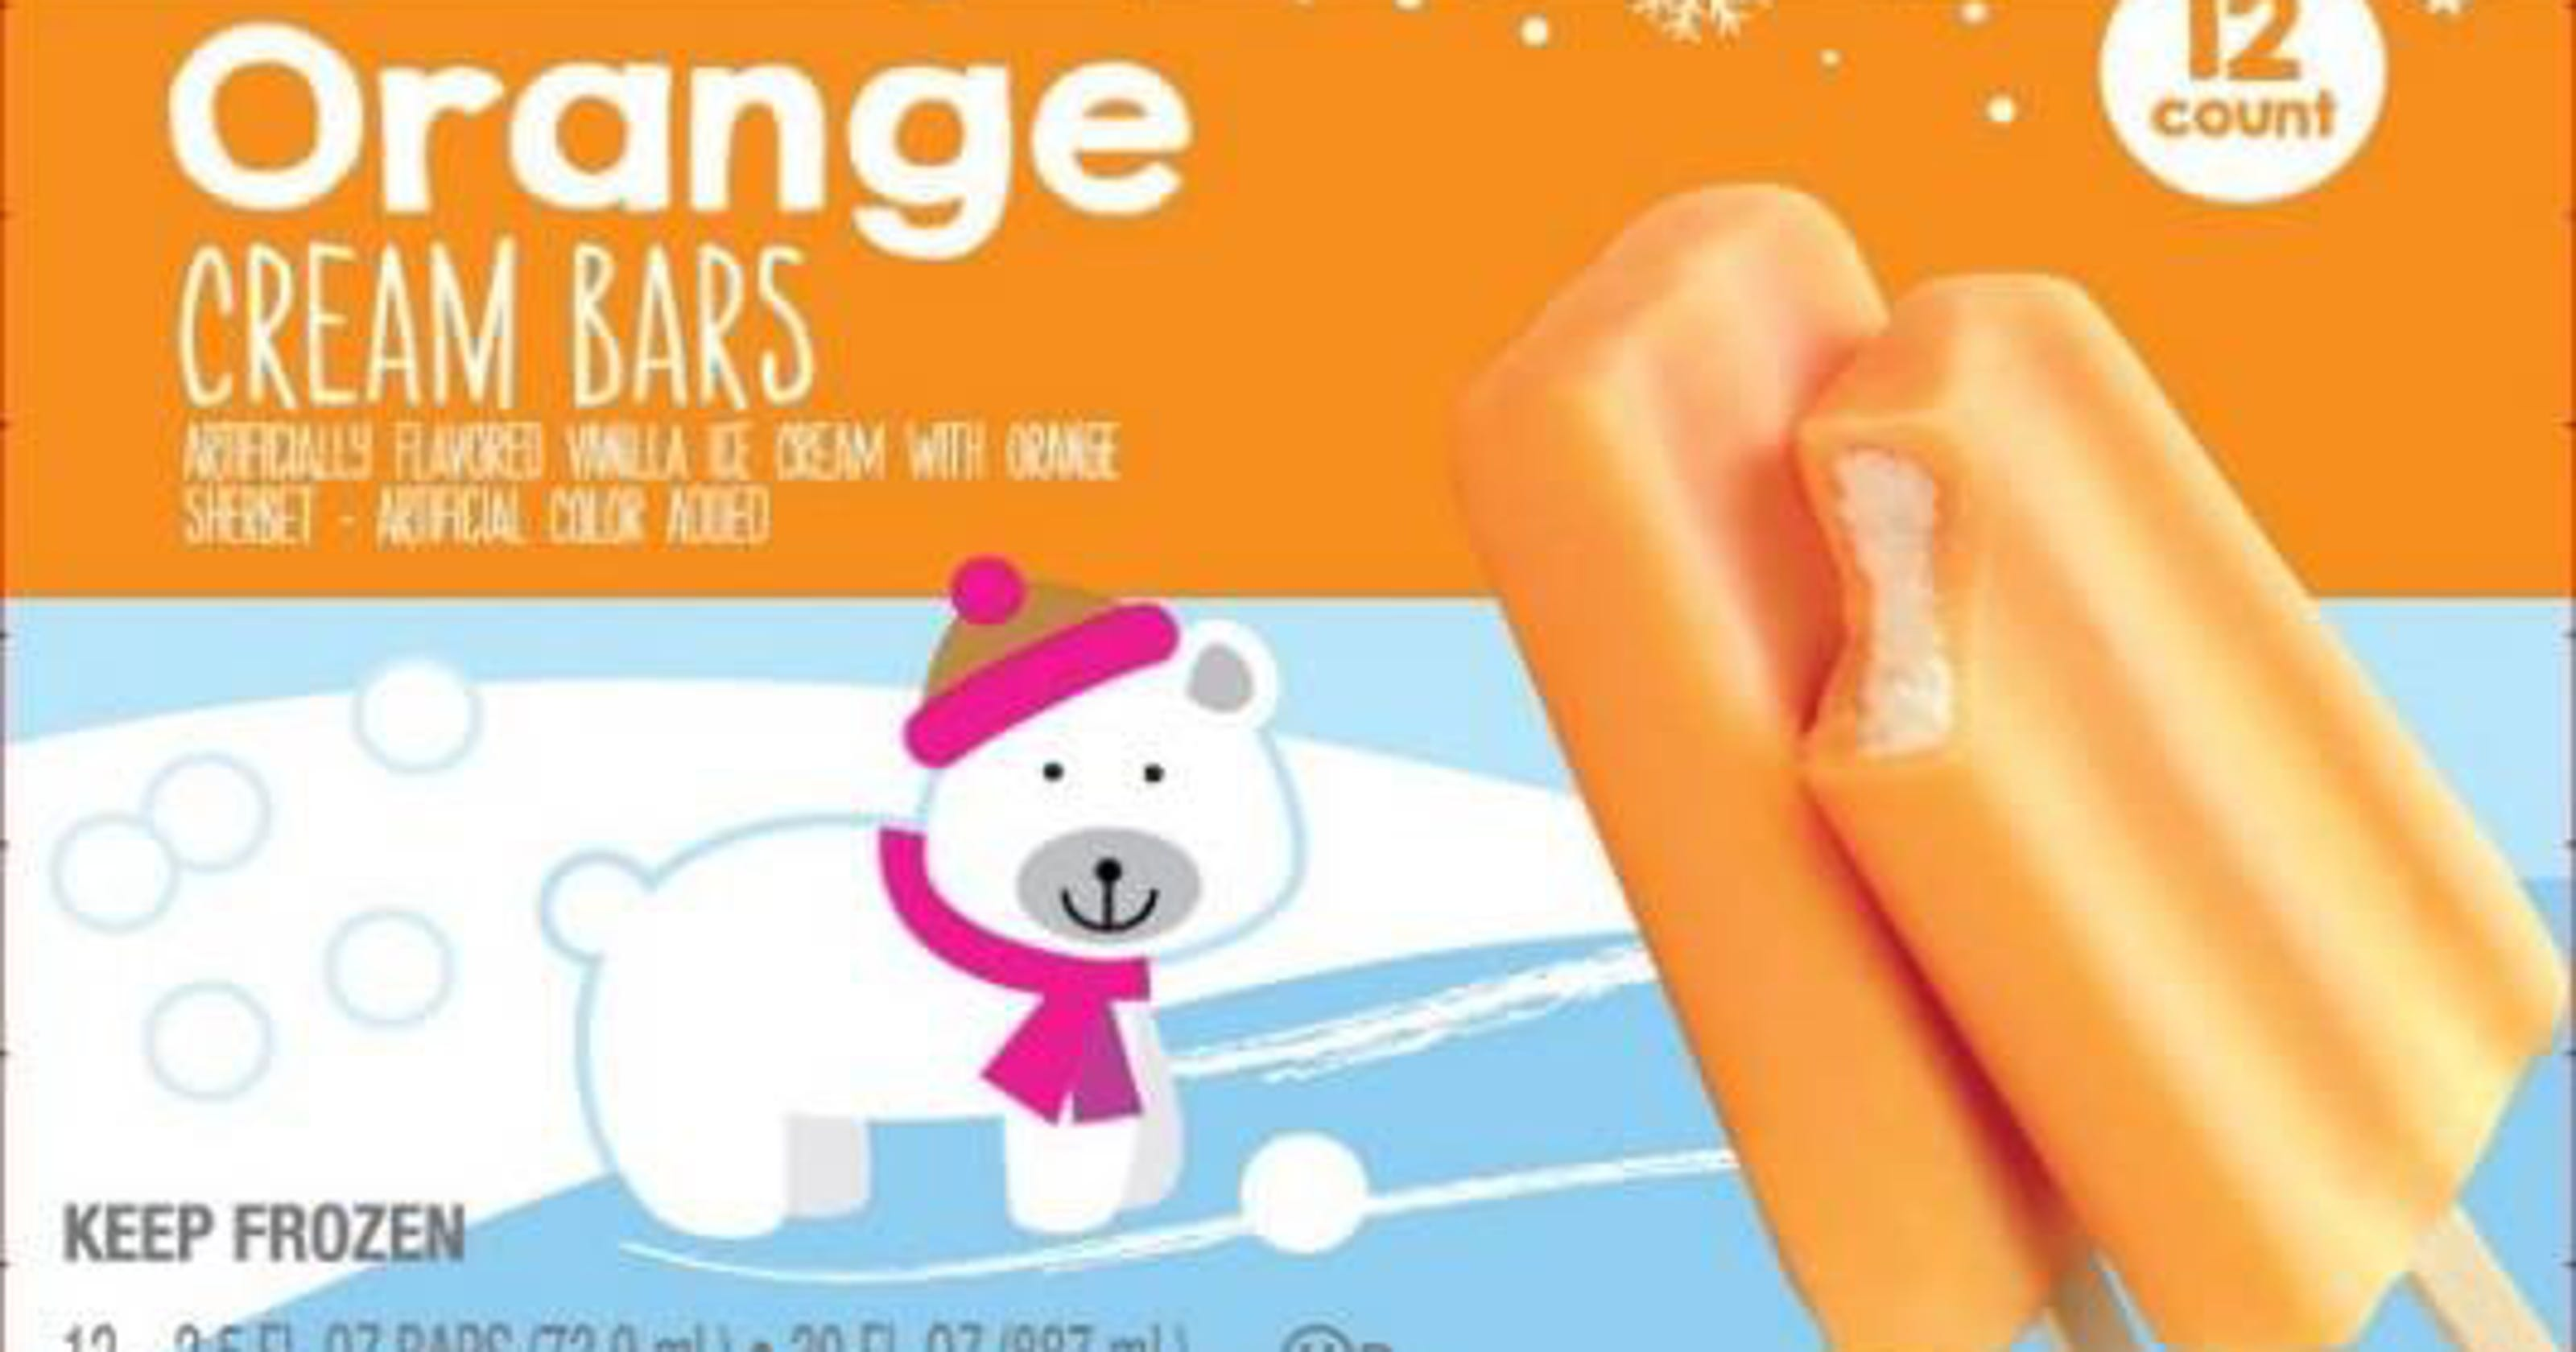 ice cream bars at aldi kroger meijer recalled for possible listeria